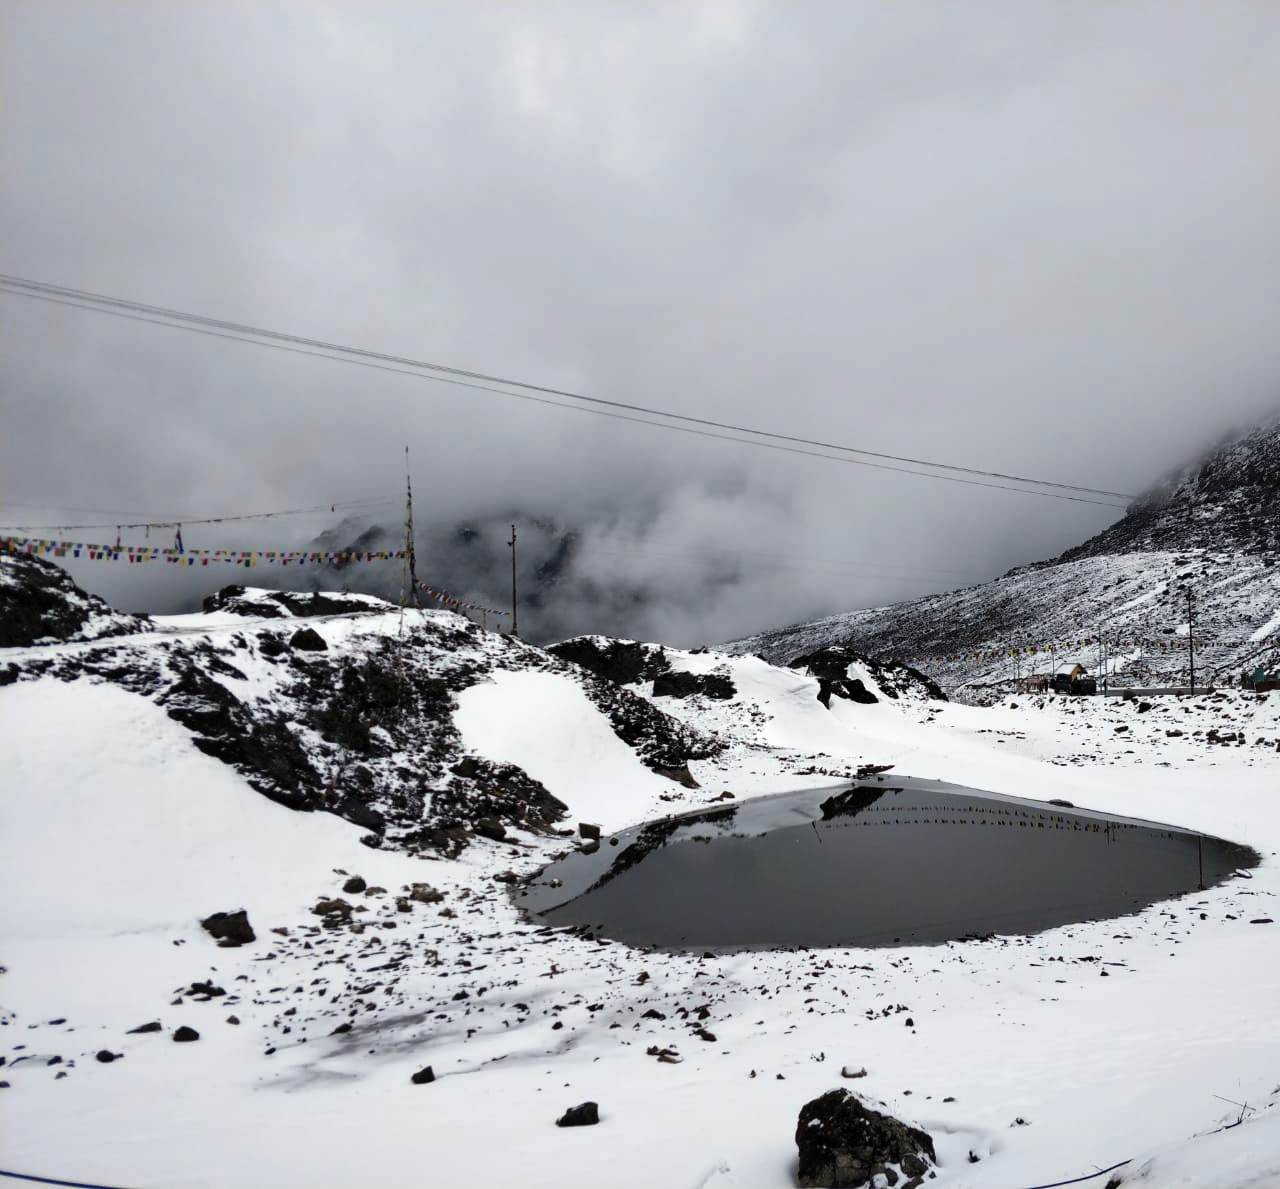 Near Snow clad Sela Pass - Tawang